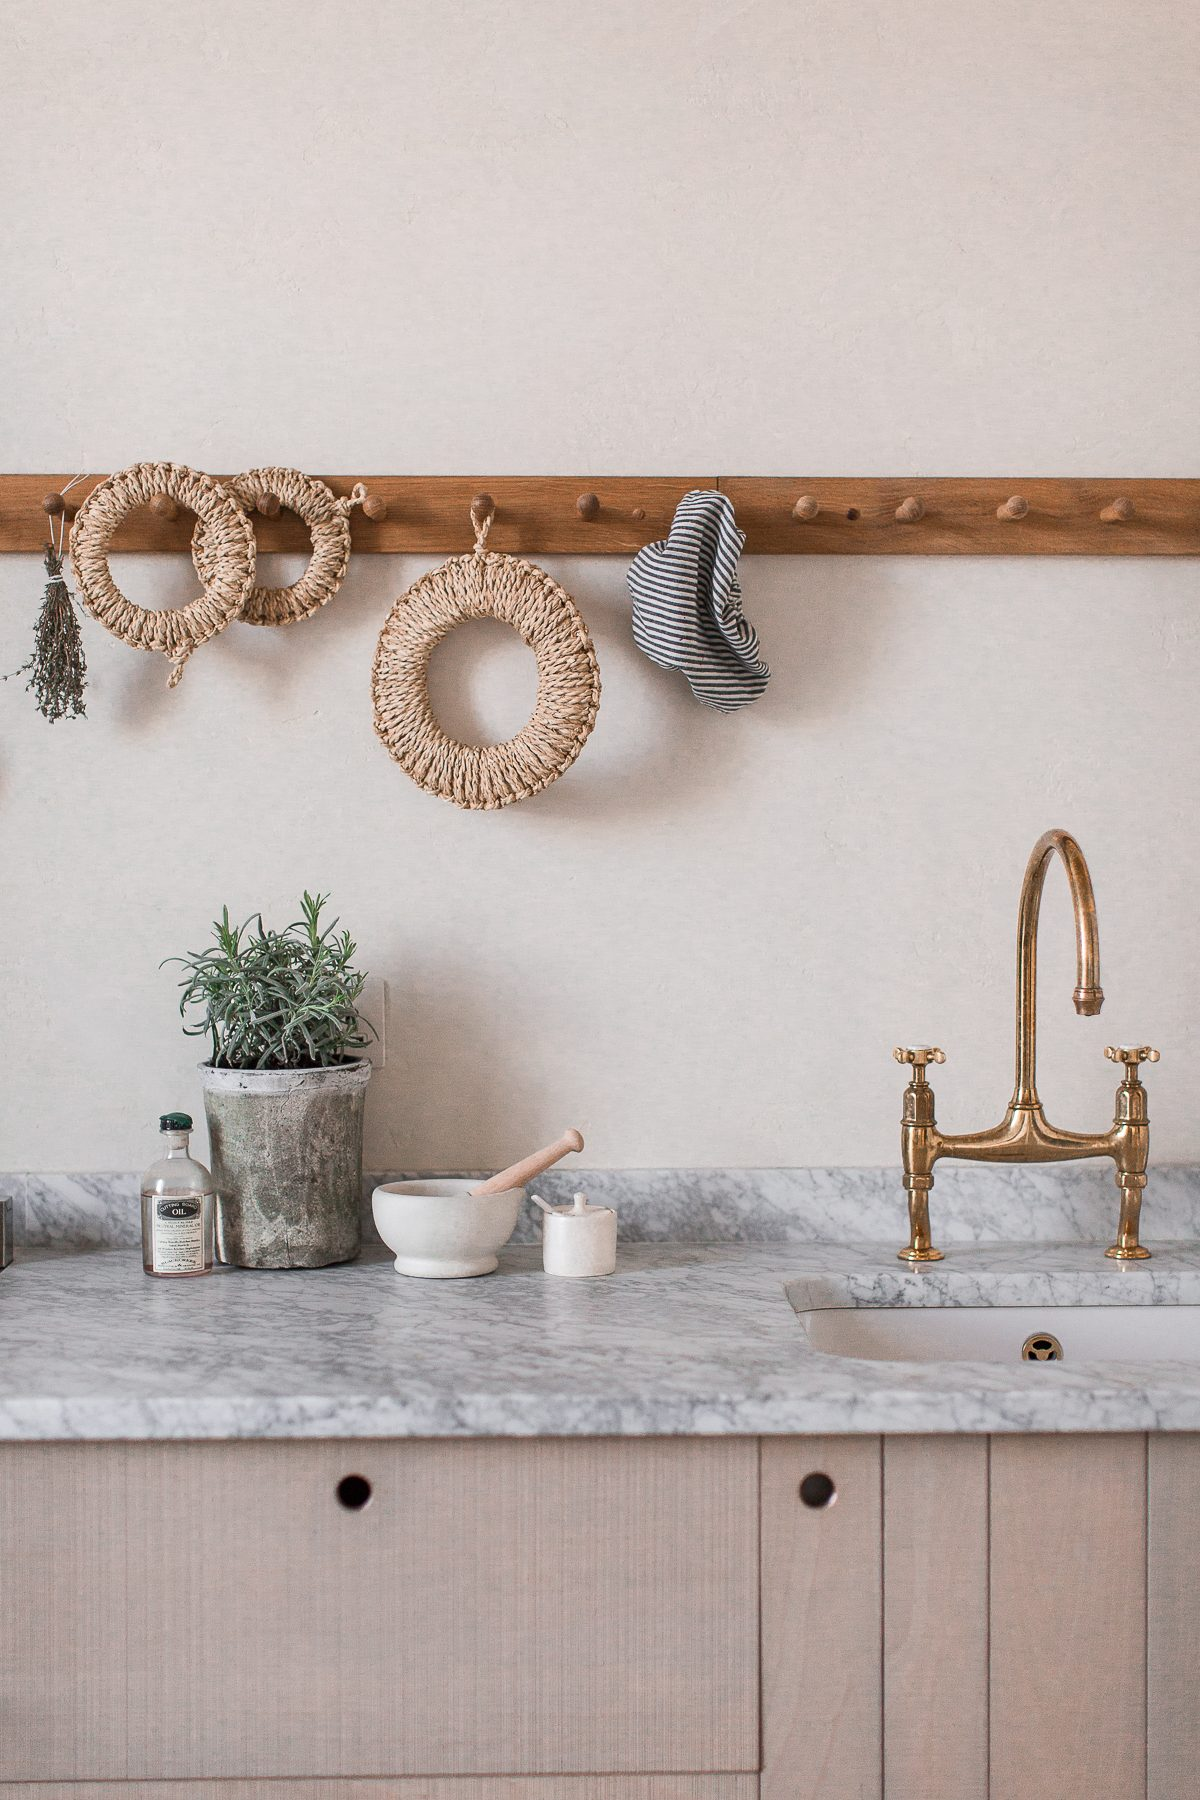 A natural kitchen by deVOL for Ingredients LDN